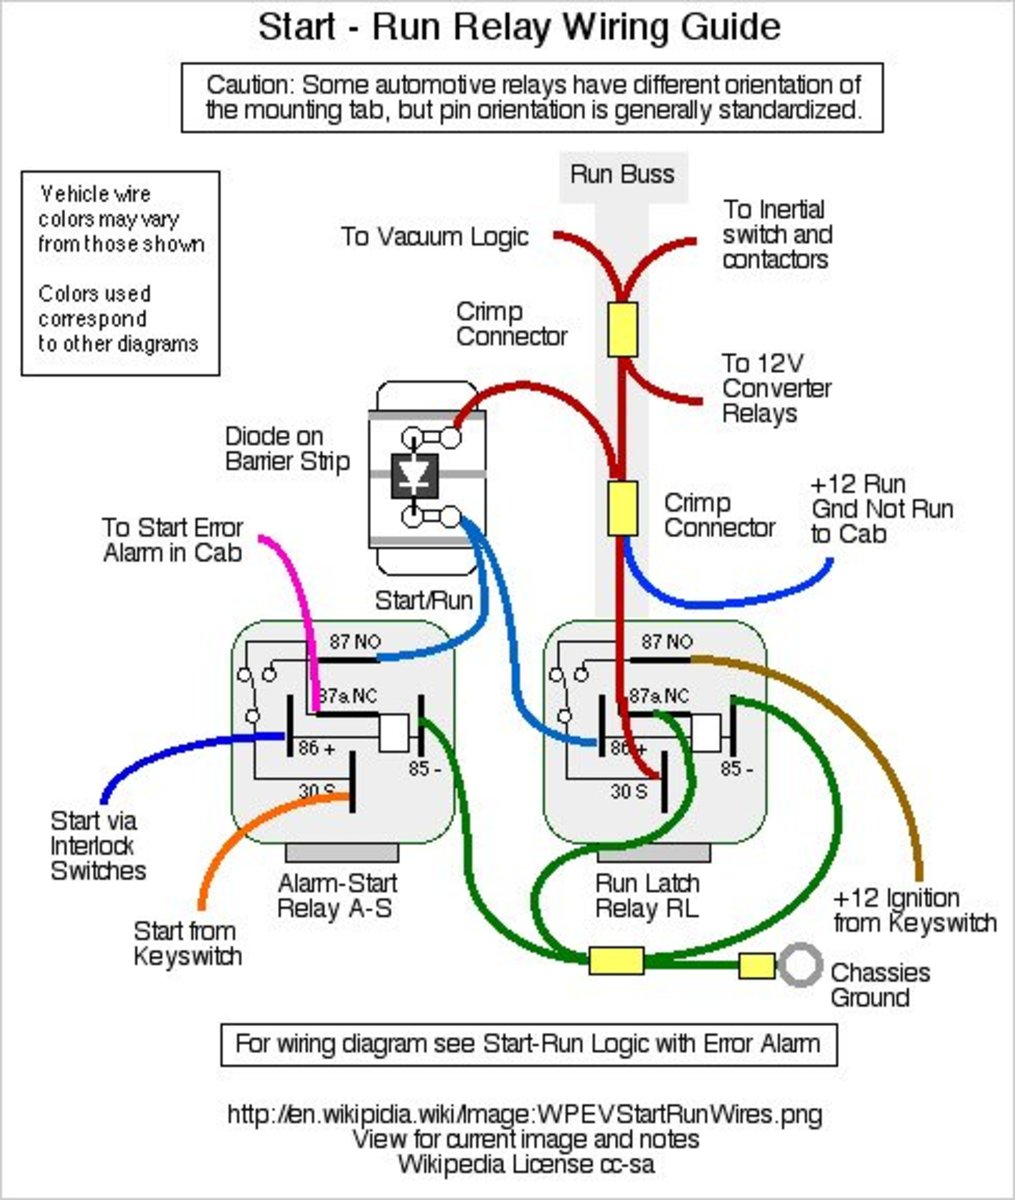 An electrical diagram will guide through your diagnostic process.